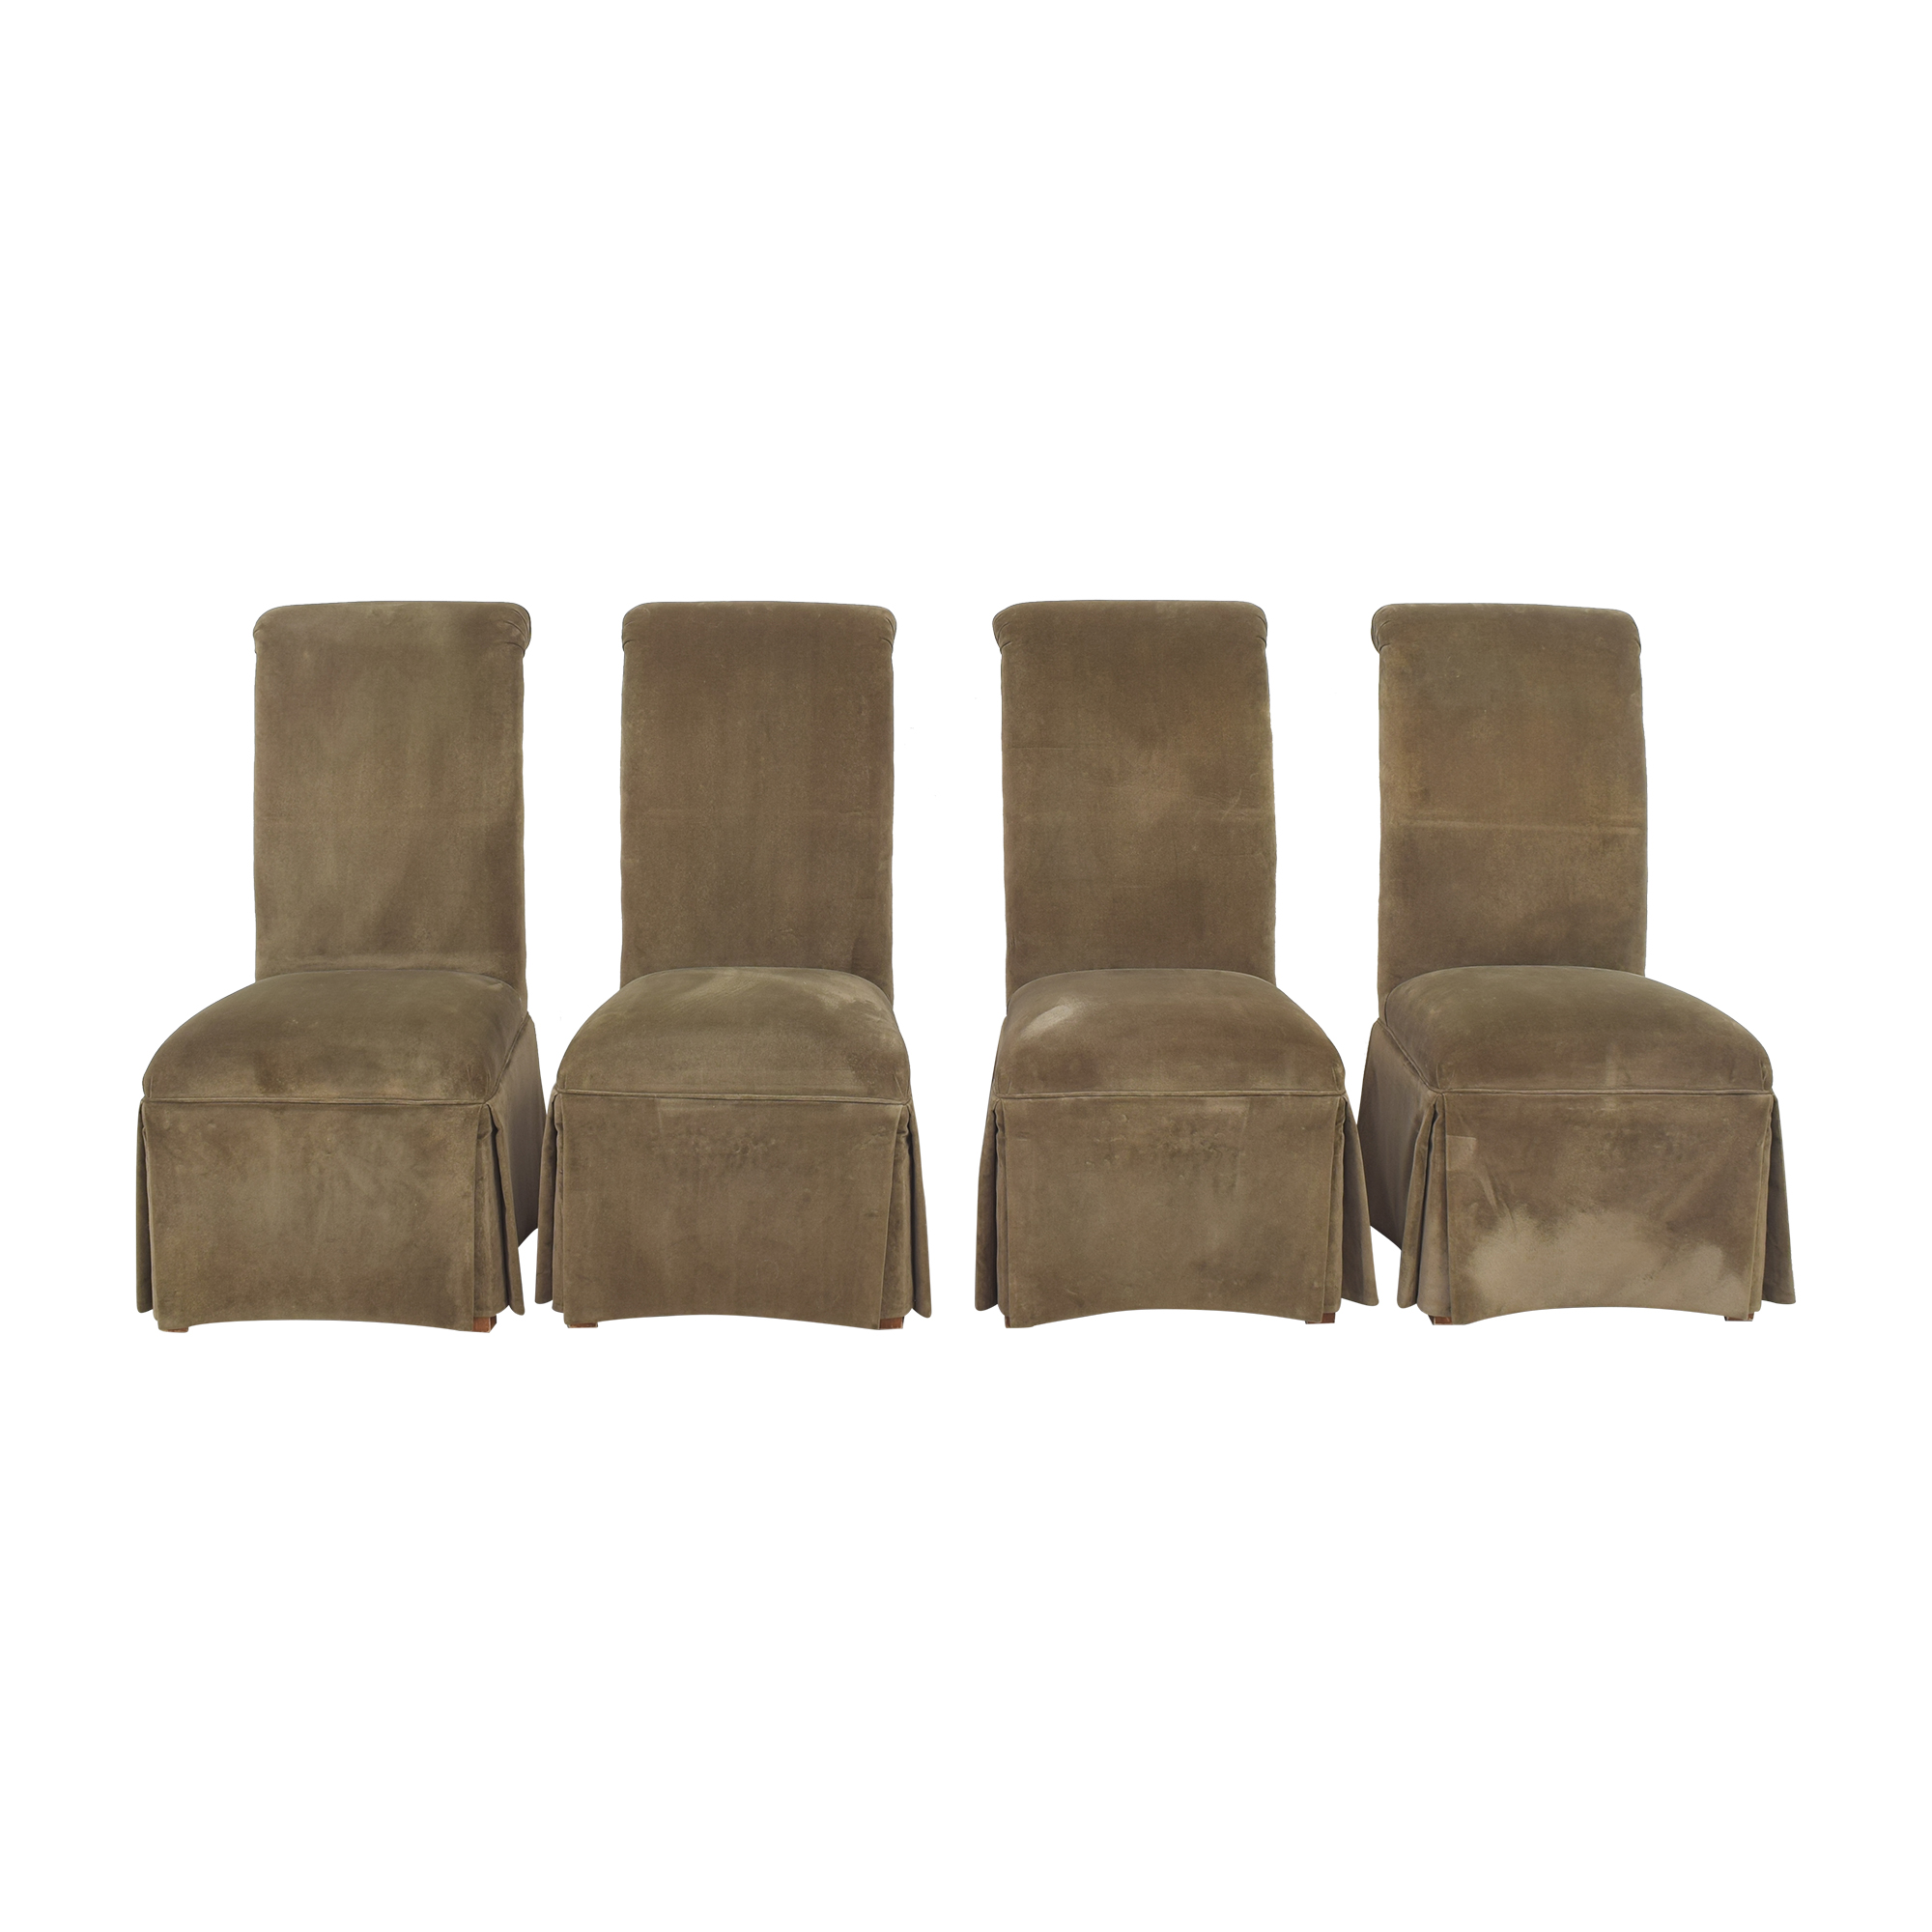 Domain Domain Skirted Dining Chairs used